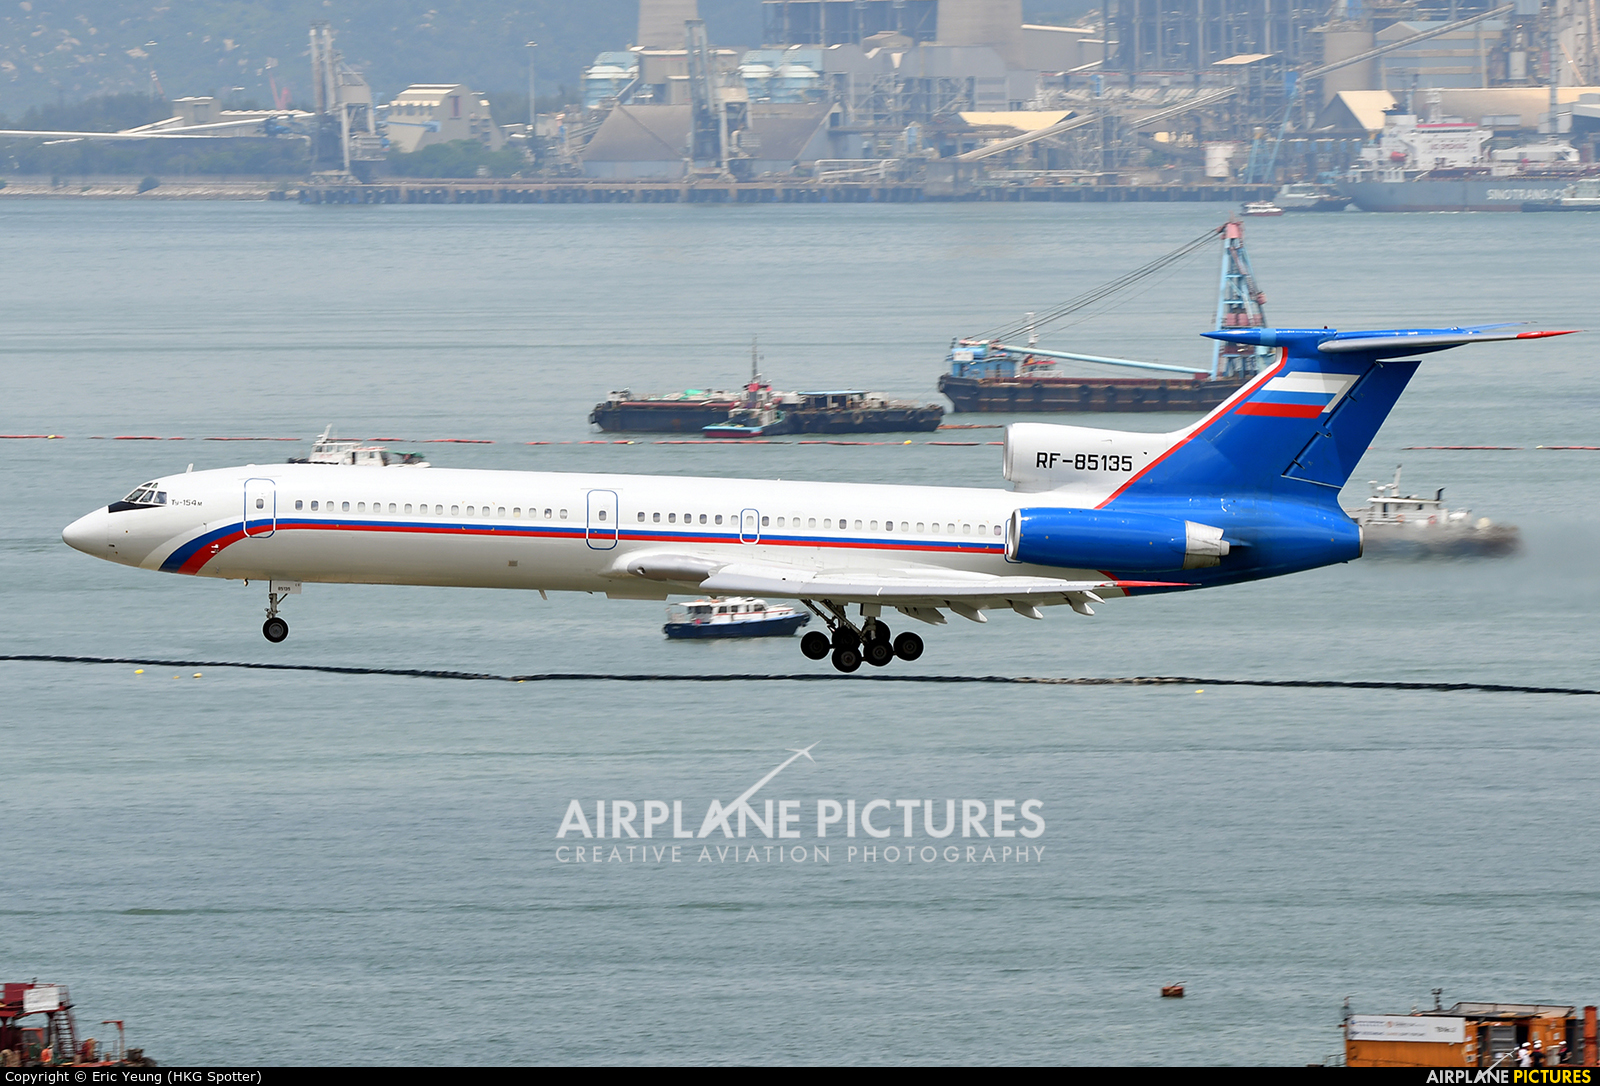 Russia - Ministry of Internal Affairs RF-85135 aircraft at HKG - Chek Lap Kok Intl